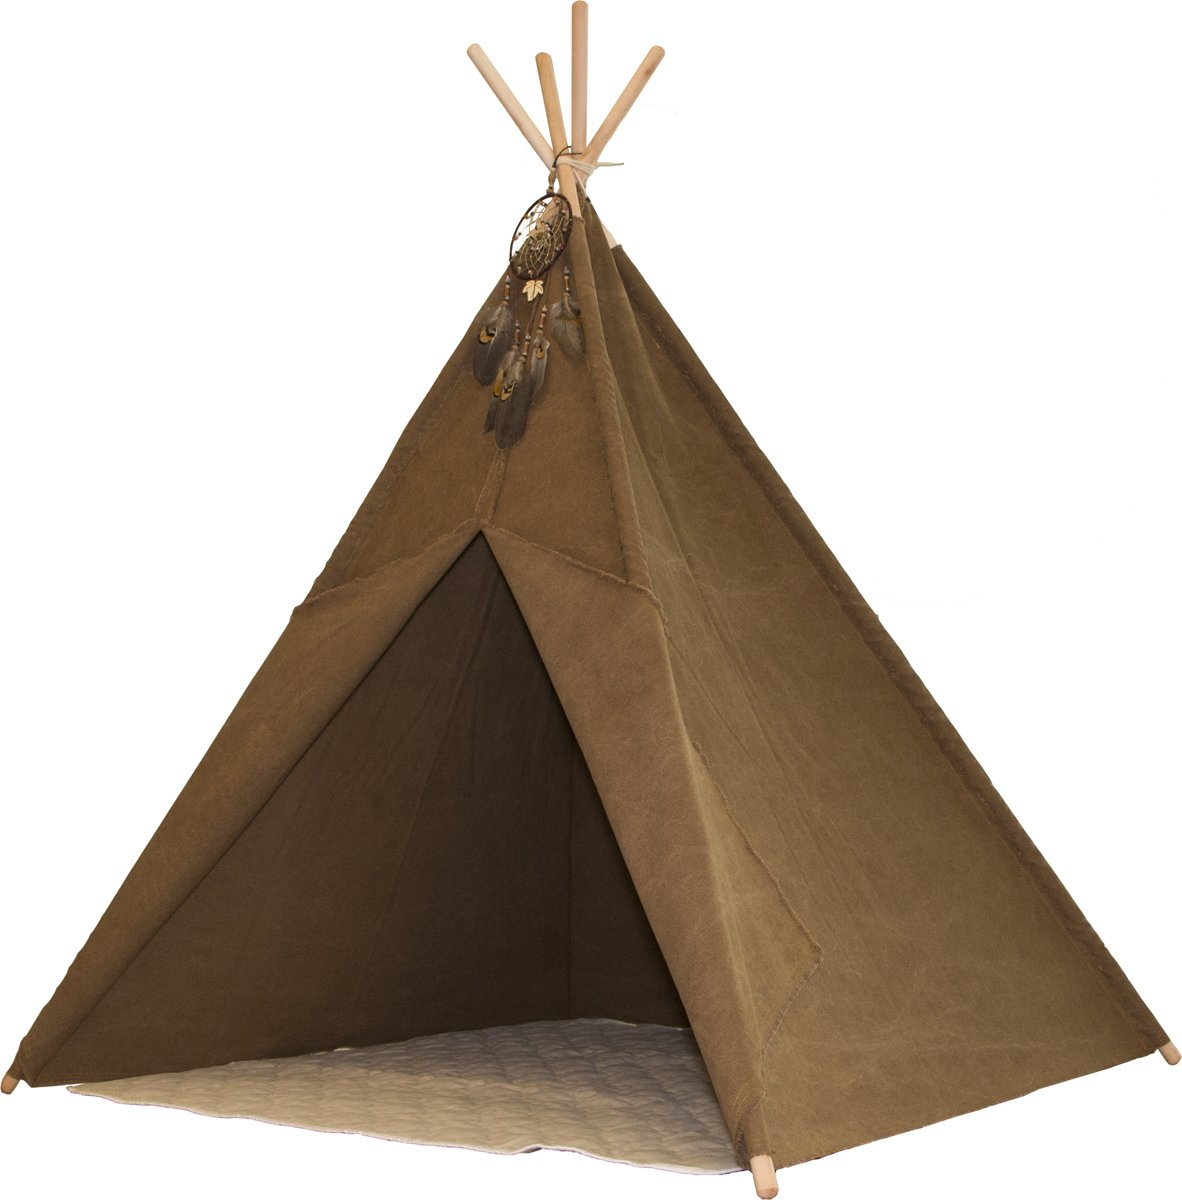 Indian Teepee Tent - Tipi tent - Indianentent - Bruin